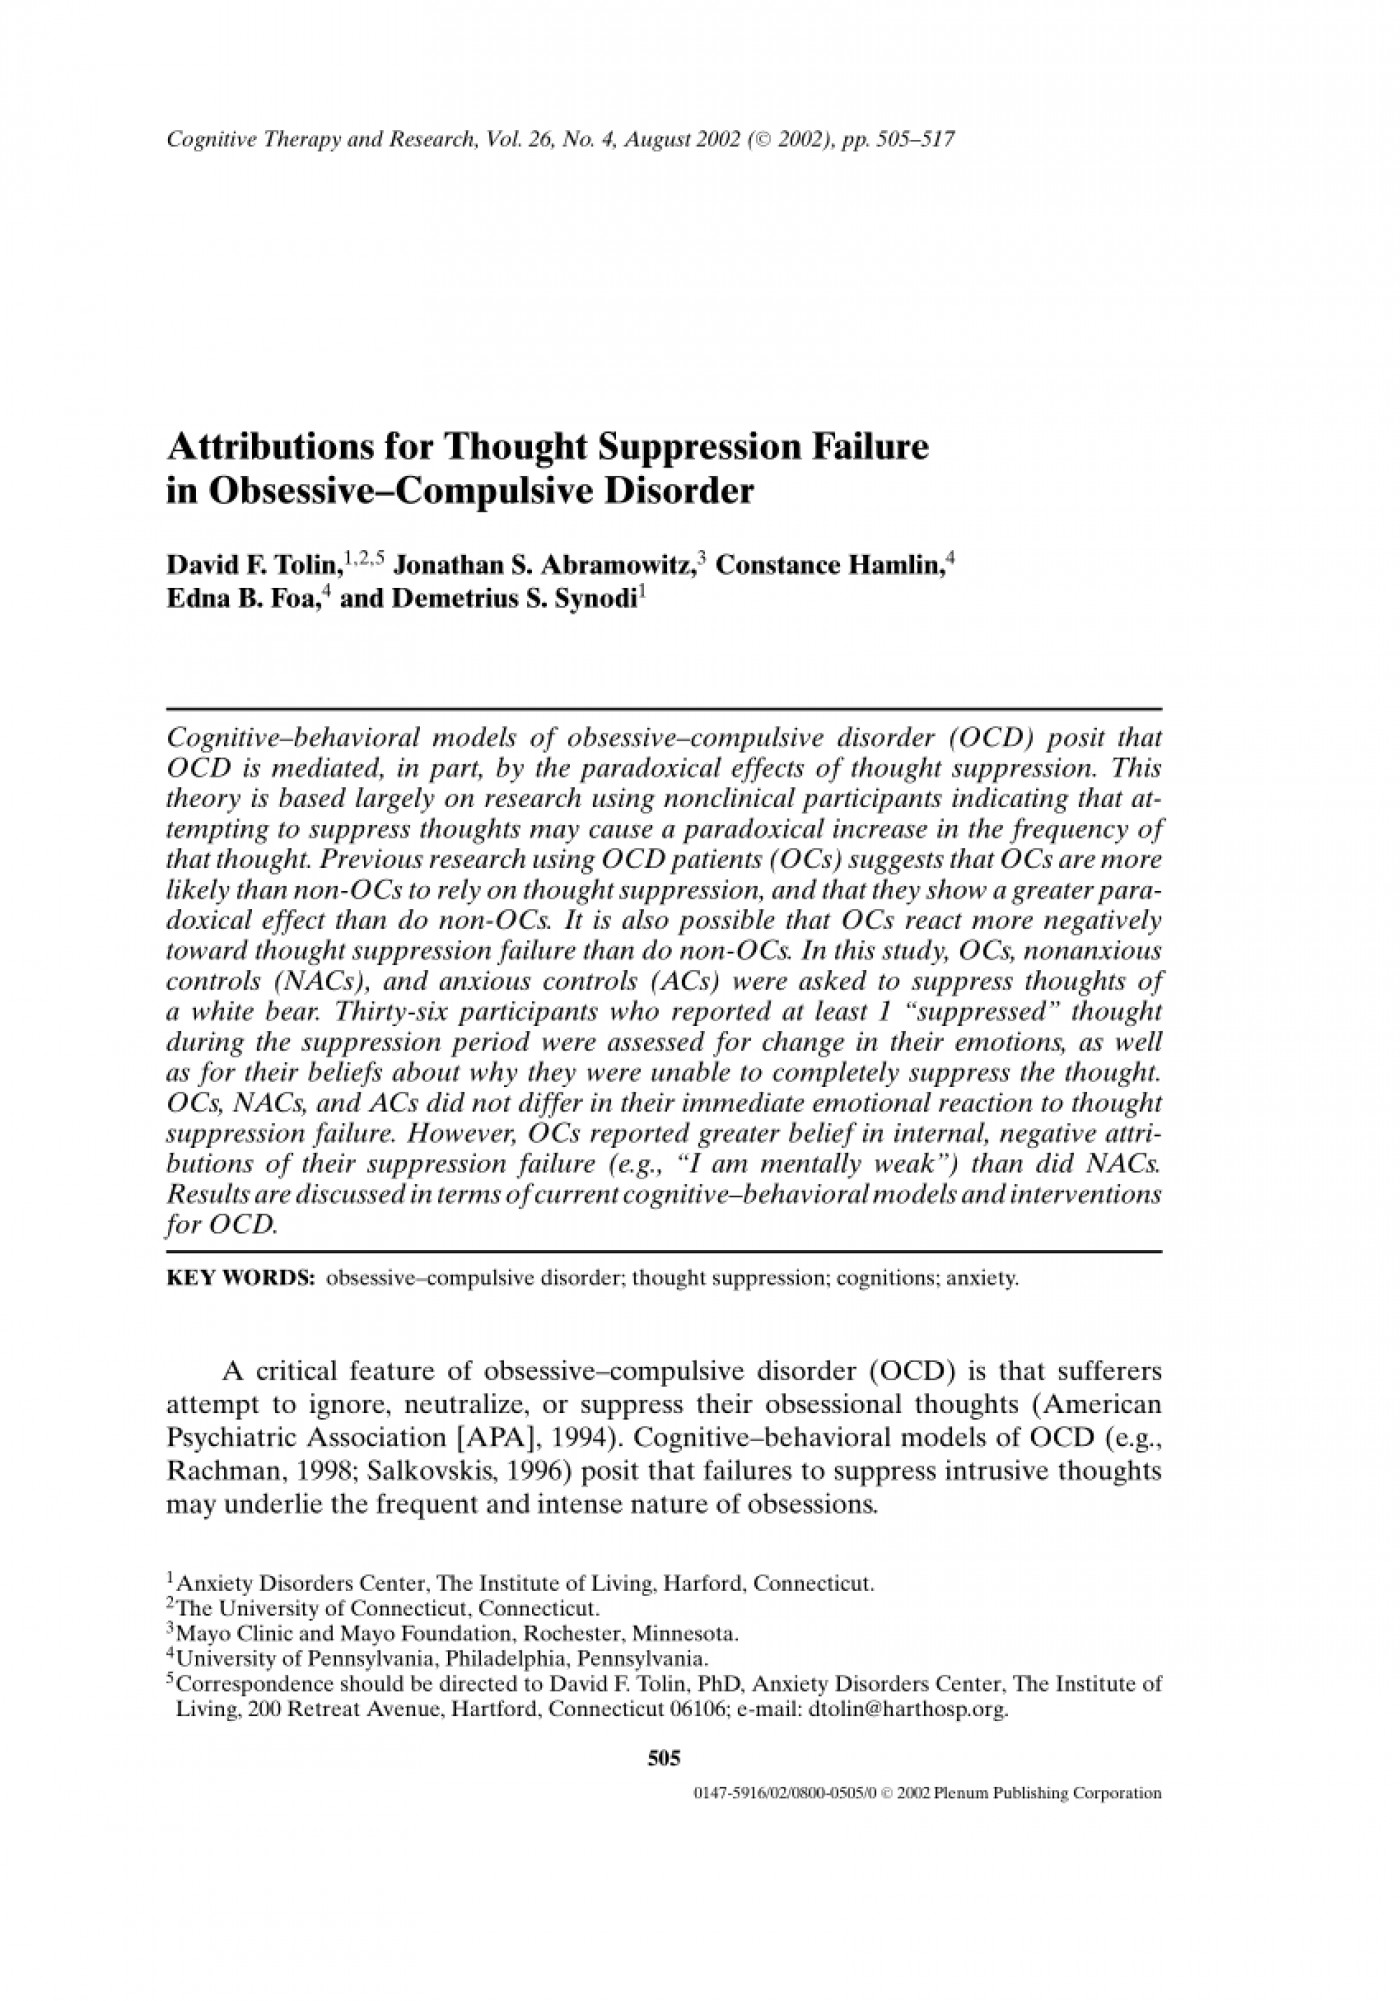 006 Research Paper On Obsessive Compulsive Disorder Apa Breathtaking Anxiety 1400